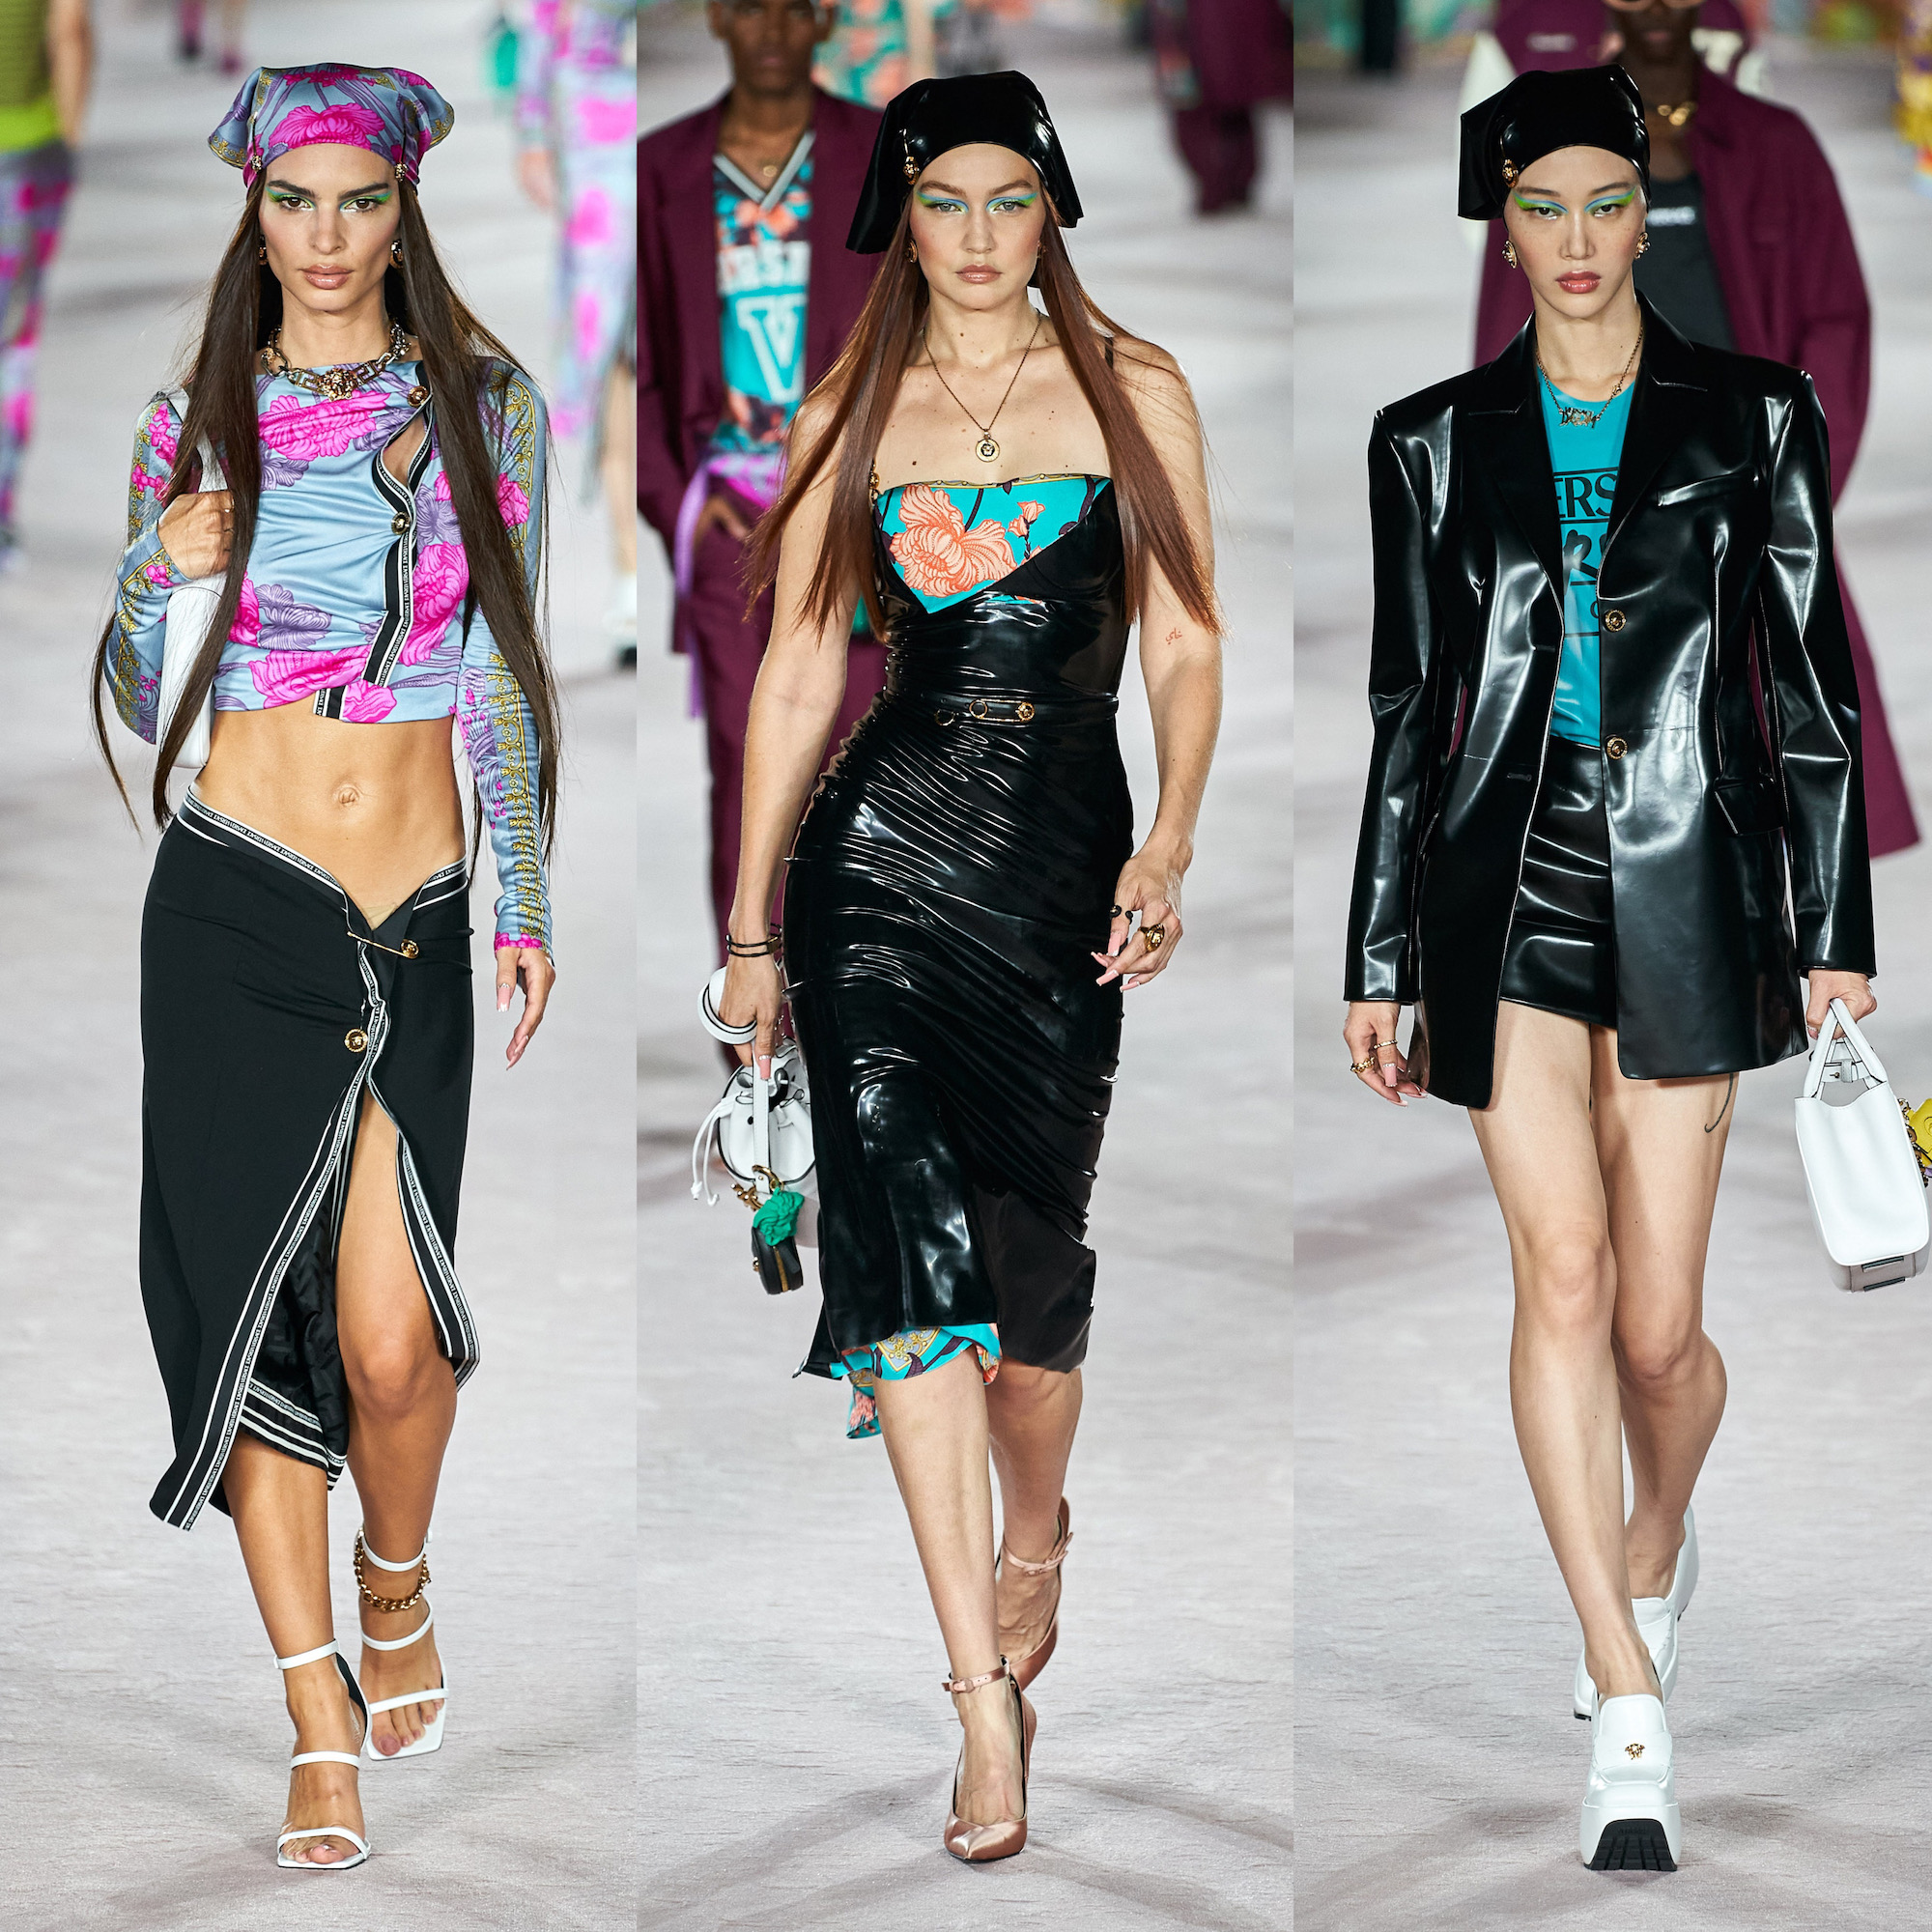 Versace's collection 2022